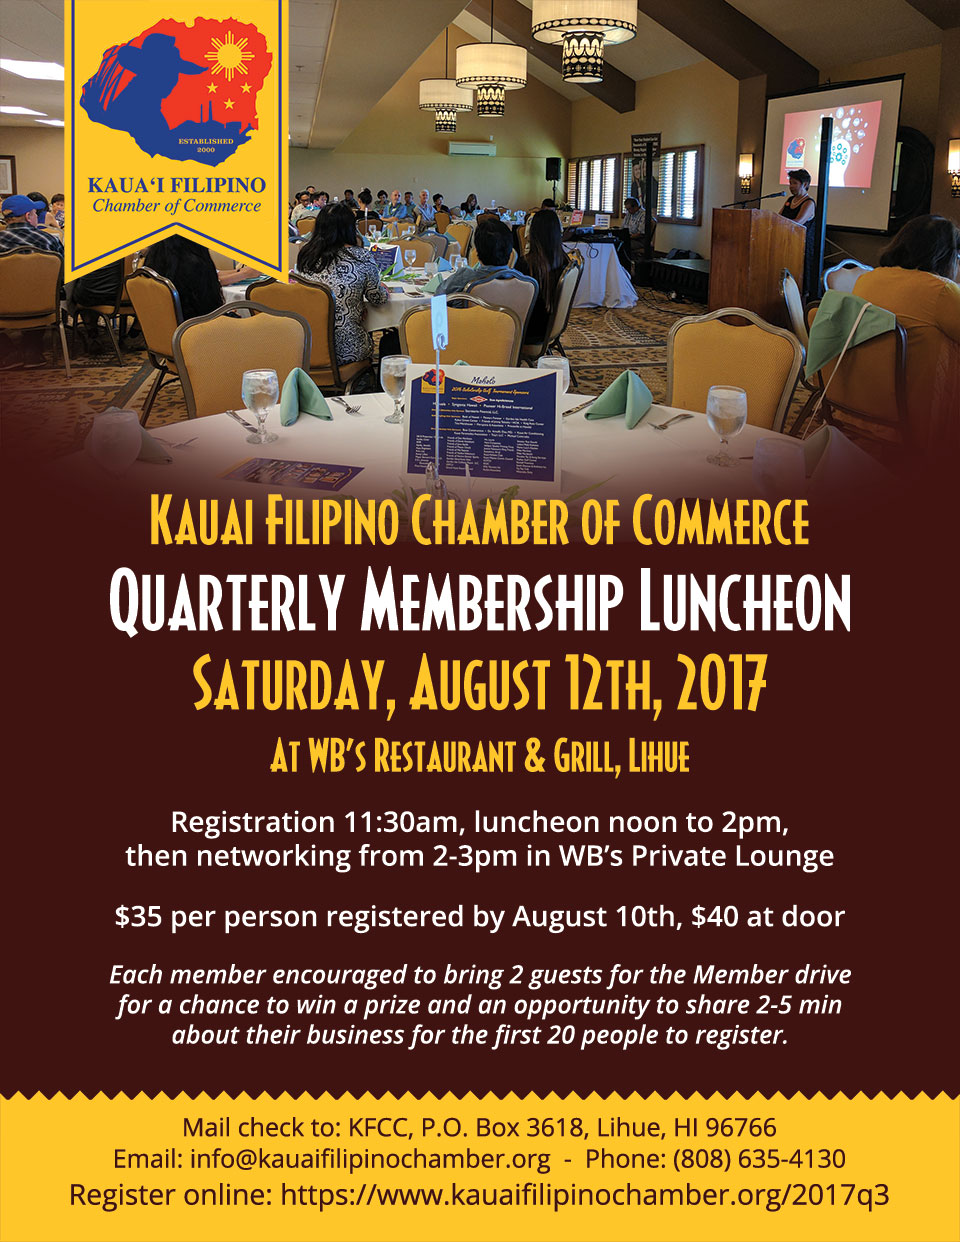 3rd Quarter 2017 Membership Luncheon